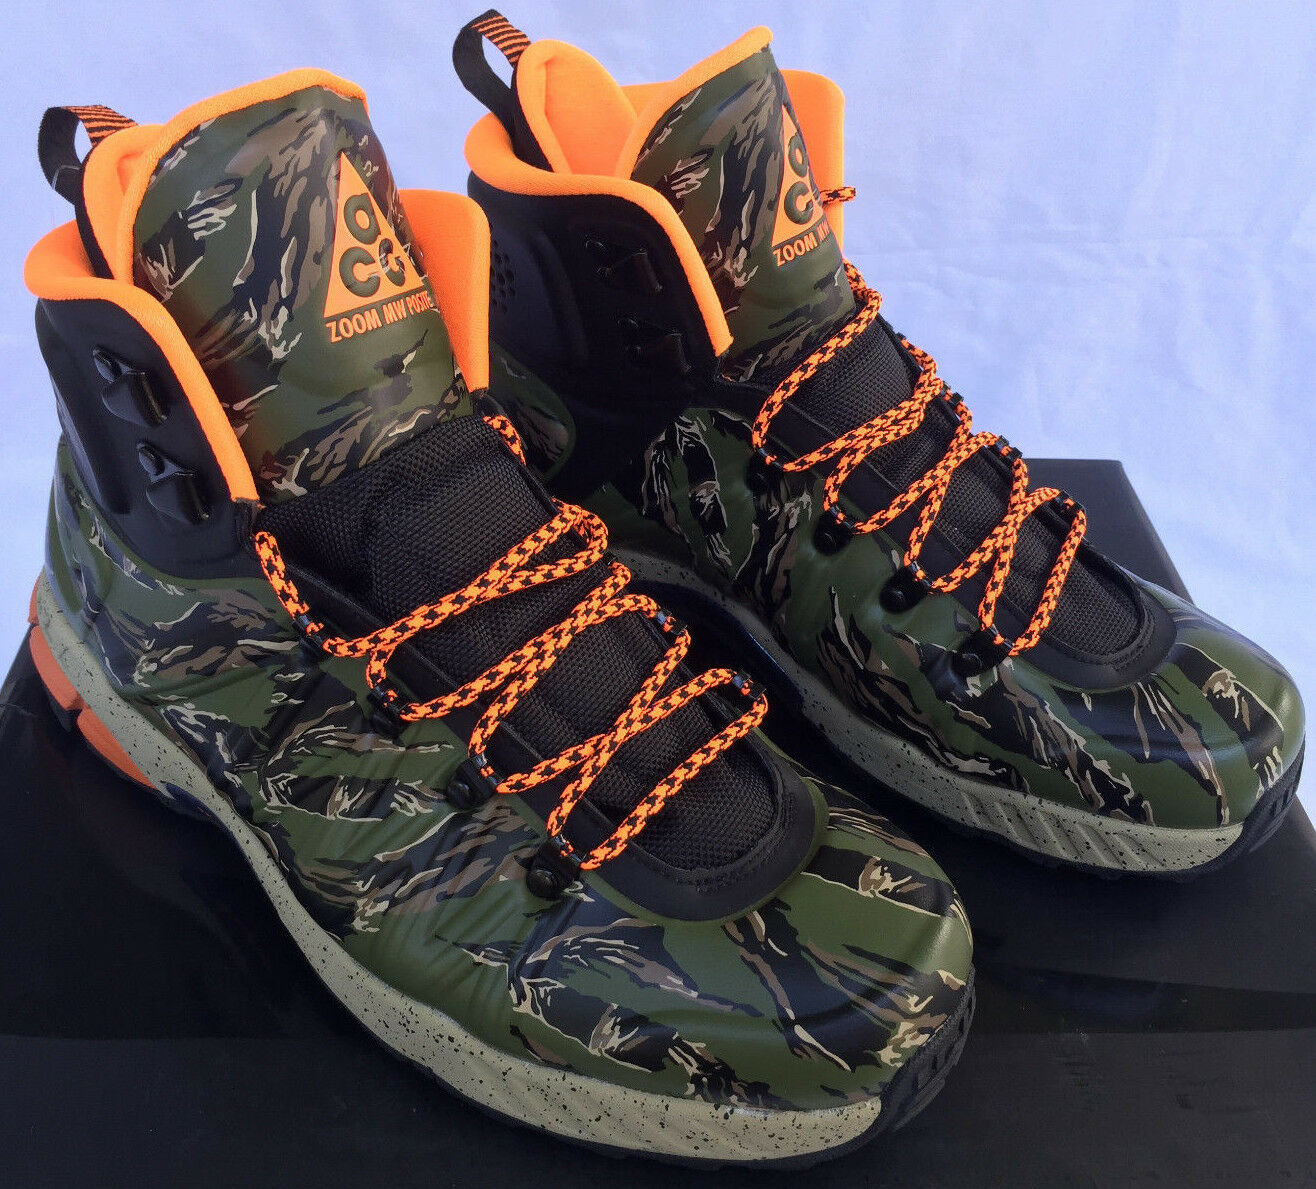 Nike Zoom MW Posite Meriwether Boots 616215-083 Camo Hunt Winter Boots Meriwether Men's 8.5 new 65a0ae